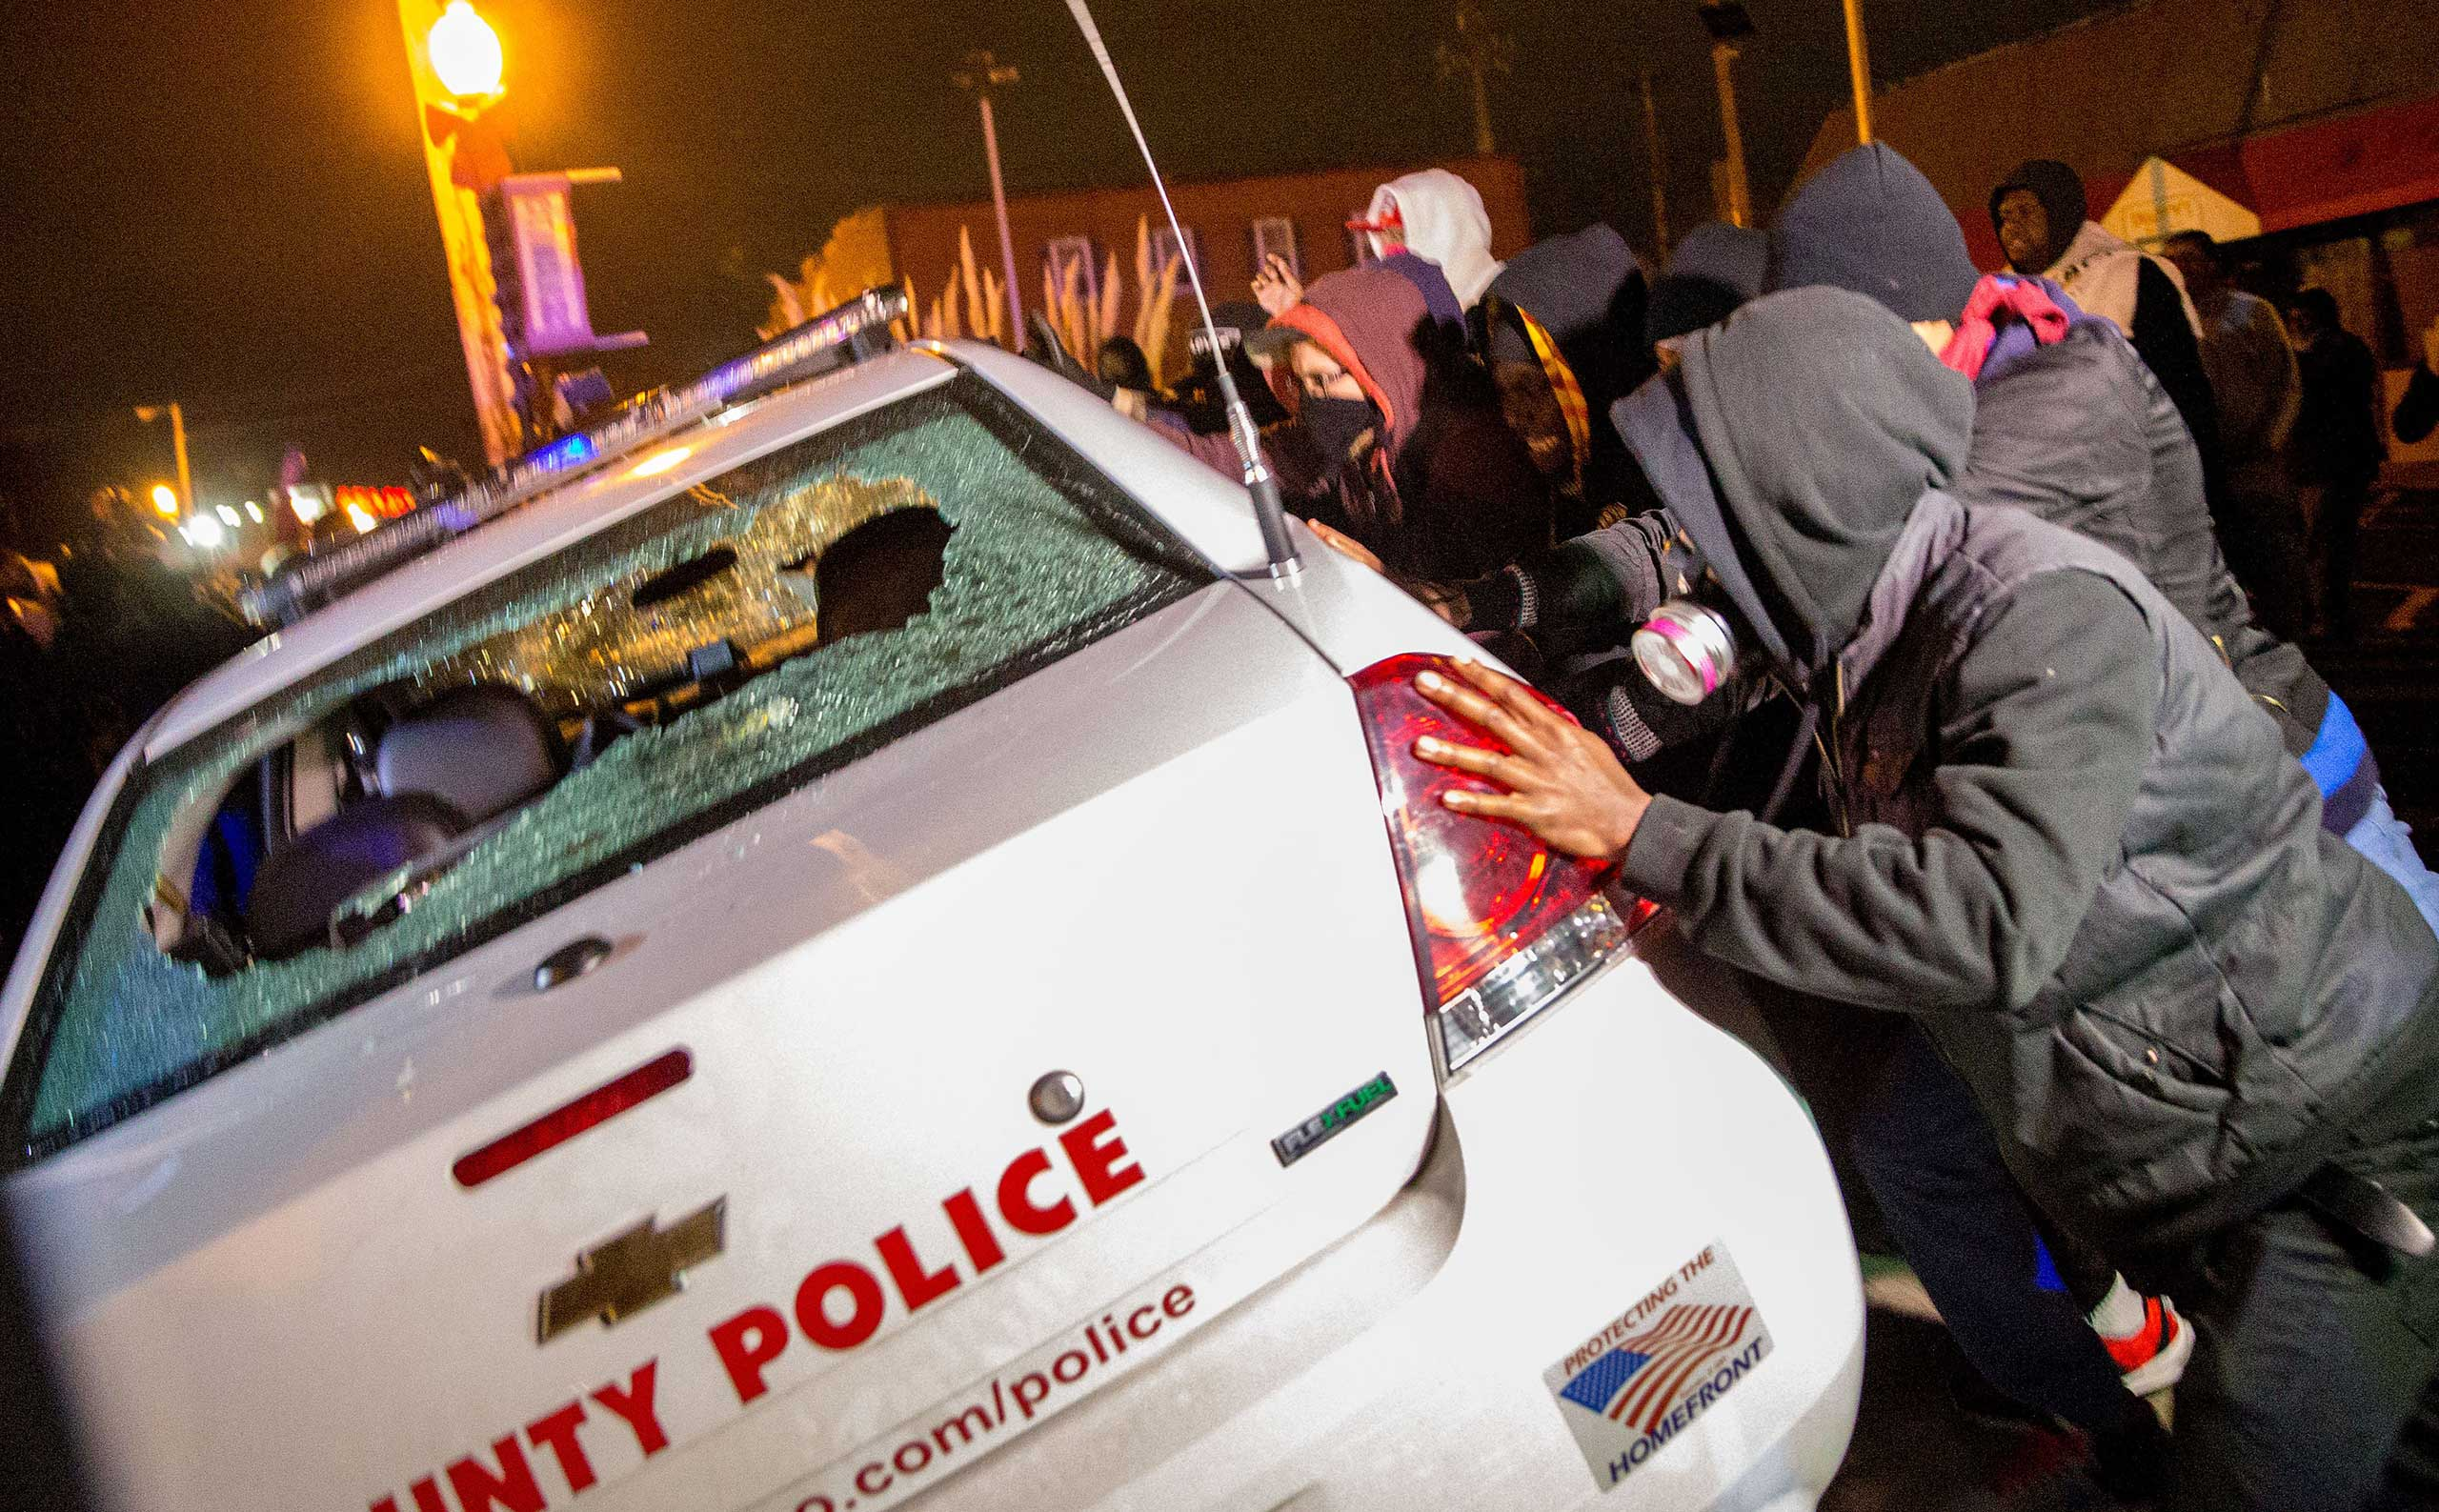 Demonstrators attempt to push over a police car in Ferguson, Mo. on Nov, 24, 2014.